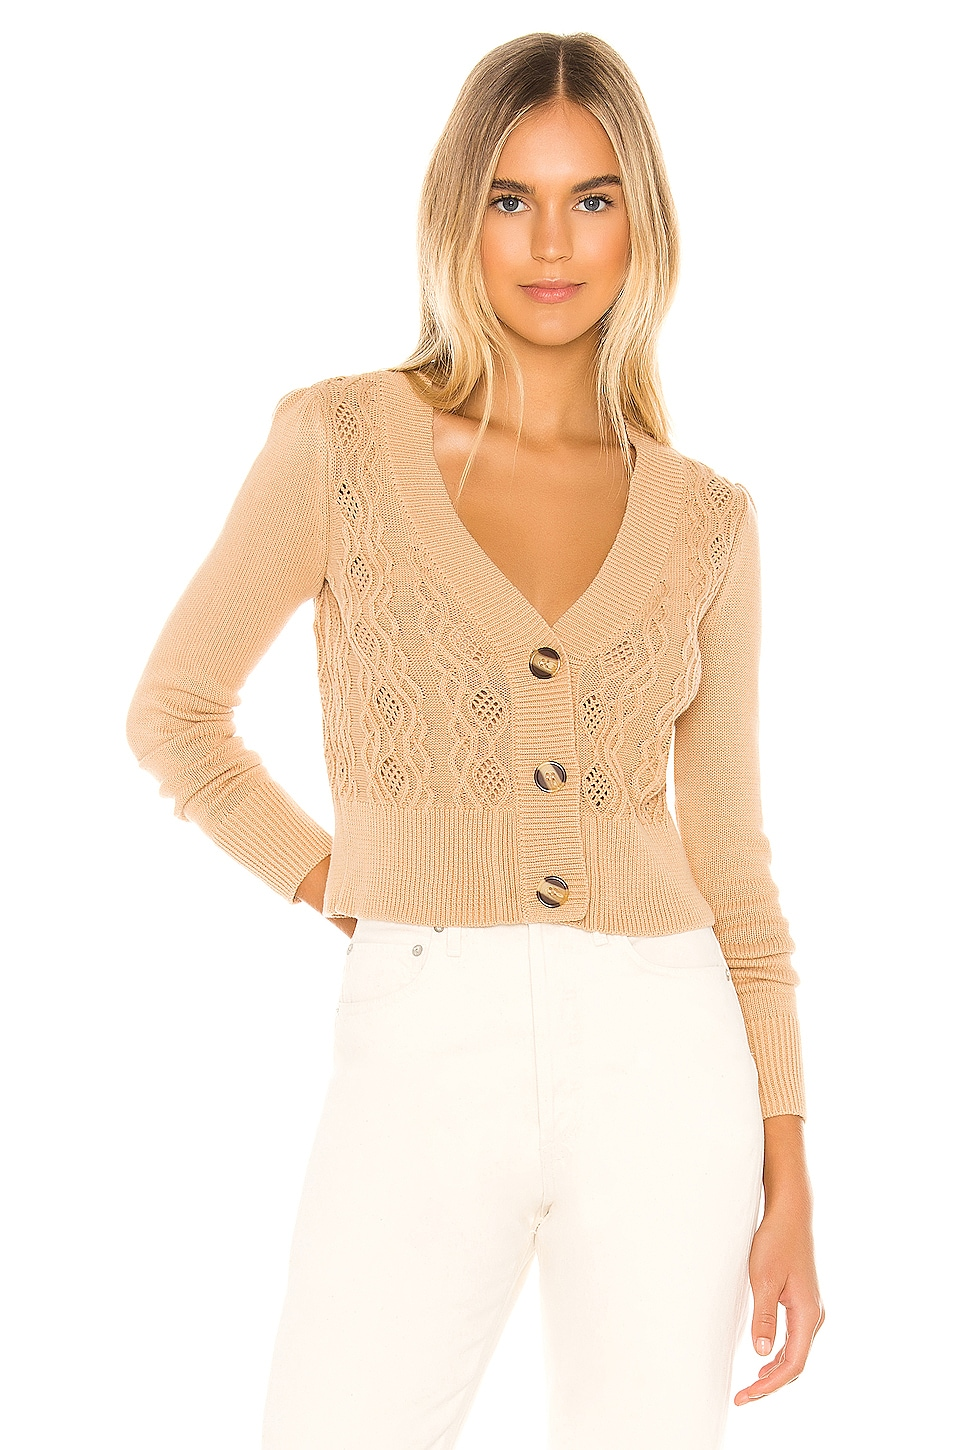 Tularosa Sandy Cardigan in Neutral